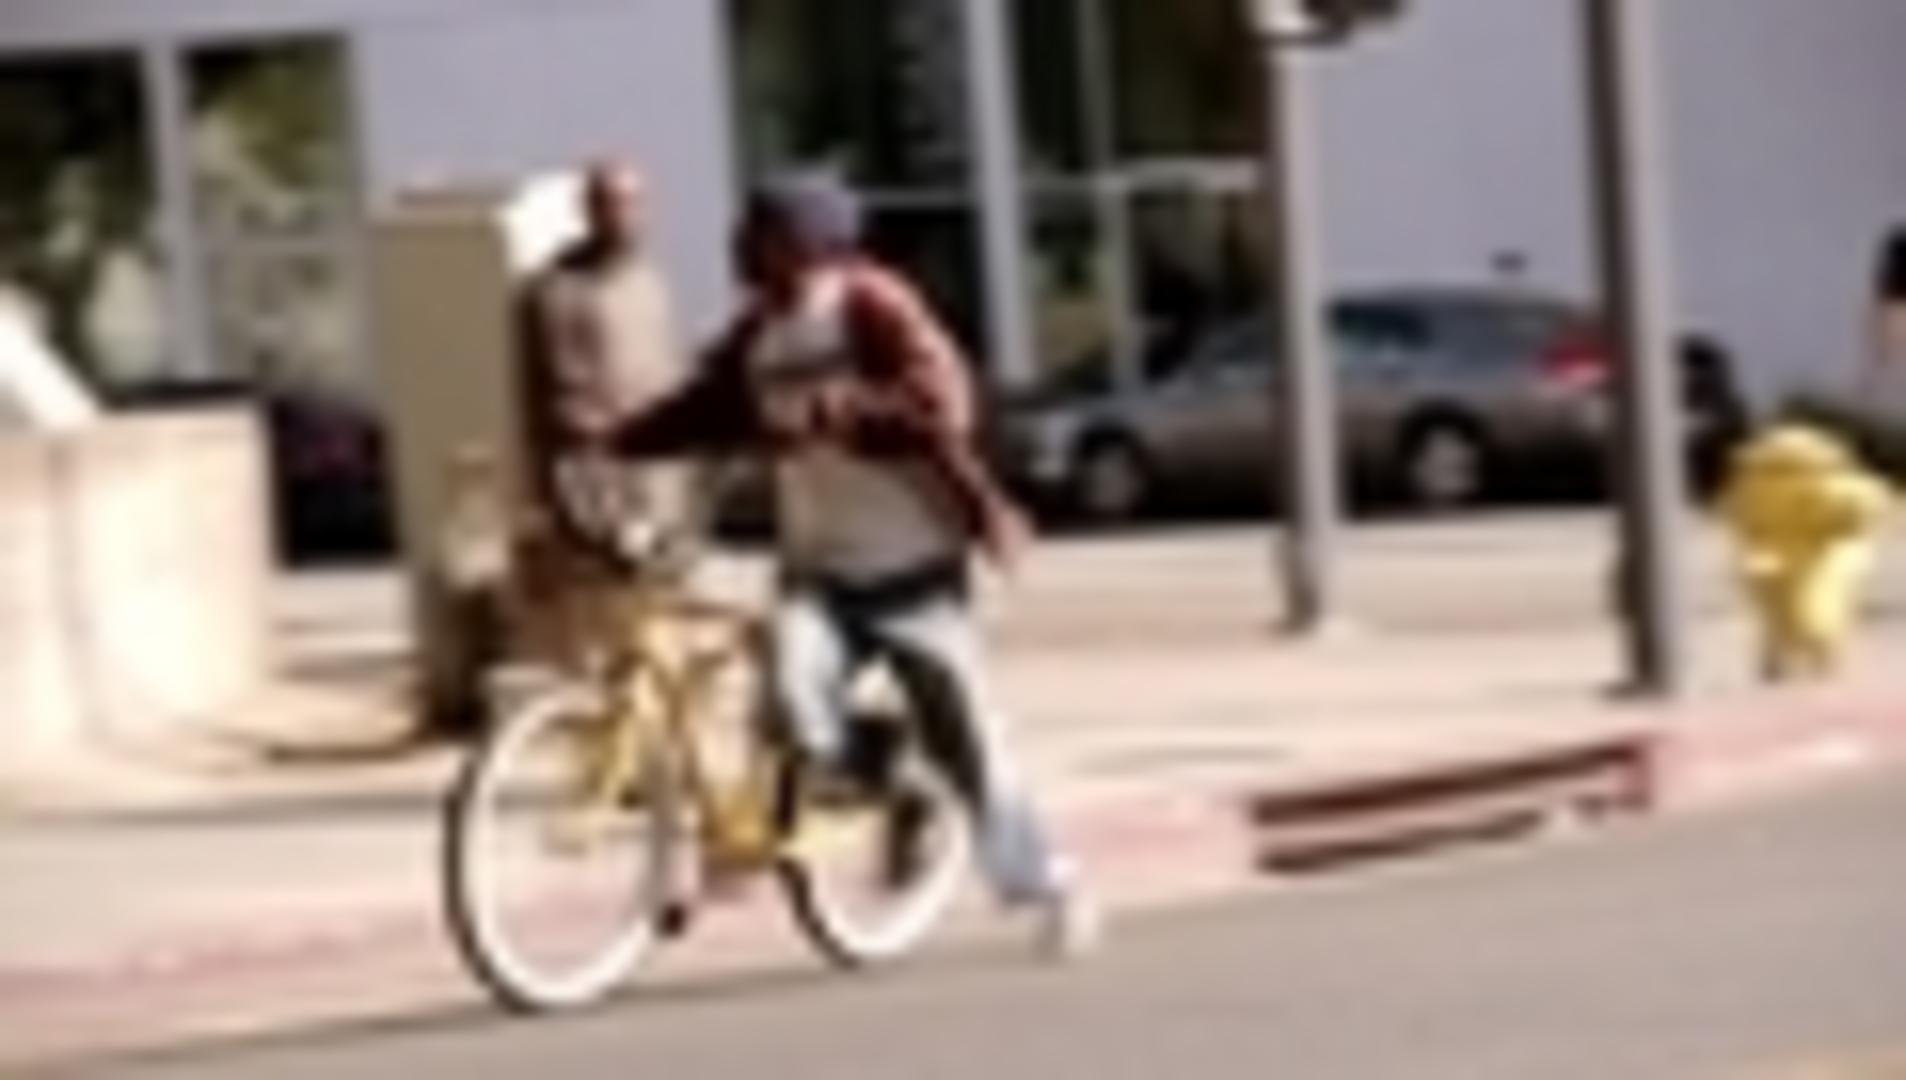 Bicycle Thief Outrunning Police